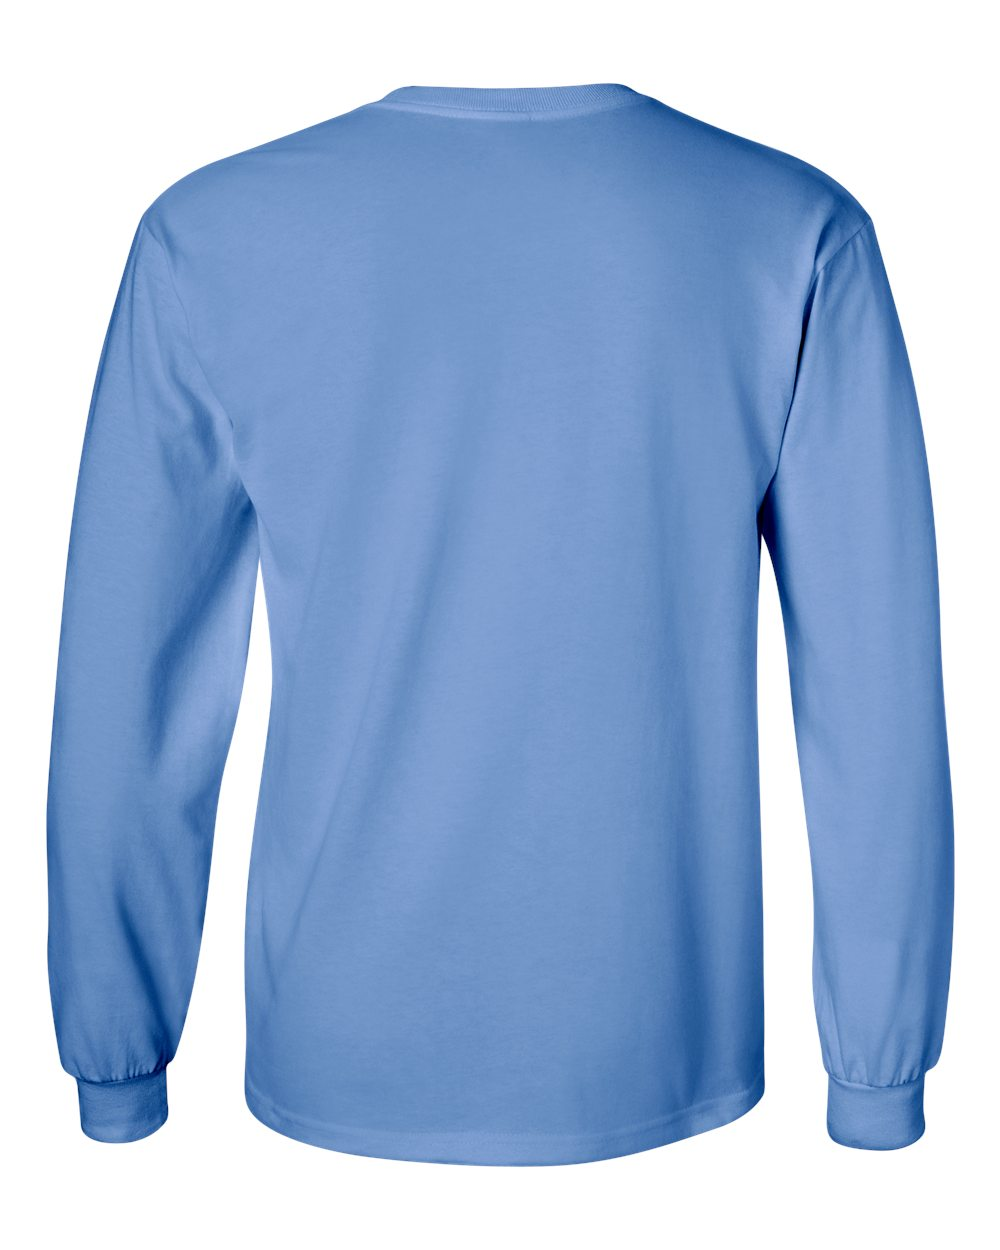 Gildan-Men-039-s-Ultra-Cotton-6-oz-Long-Sleeve-T-Shirt-G240-S-5XL thumbnail 16